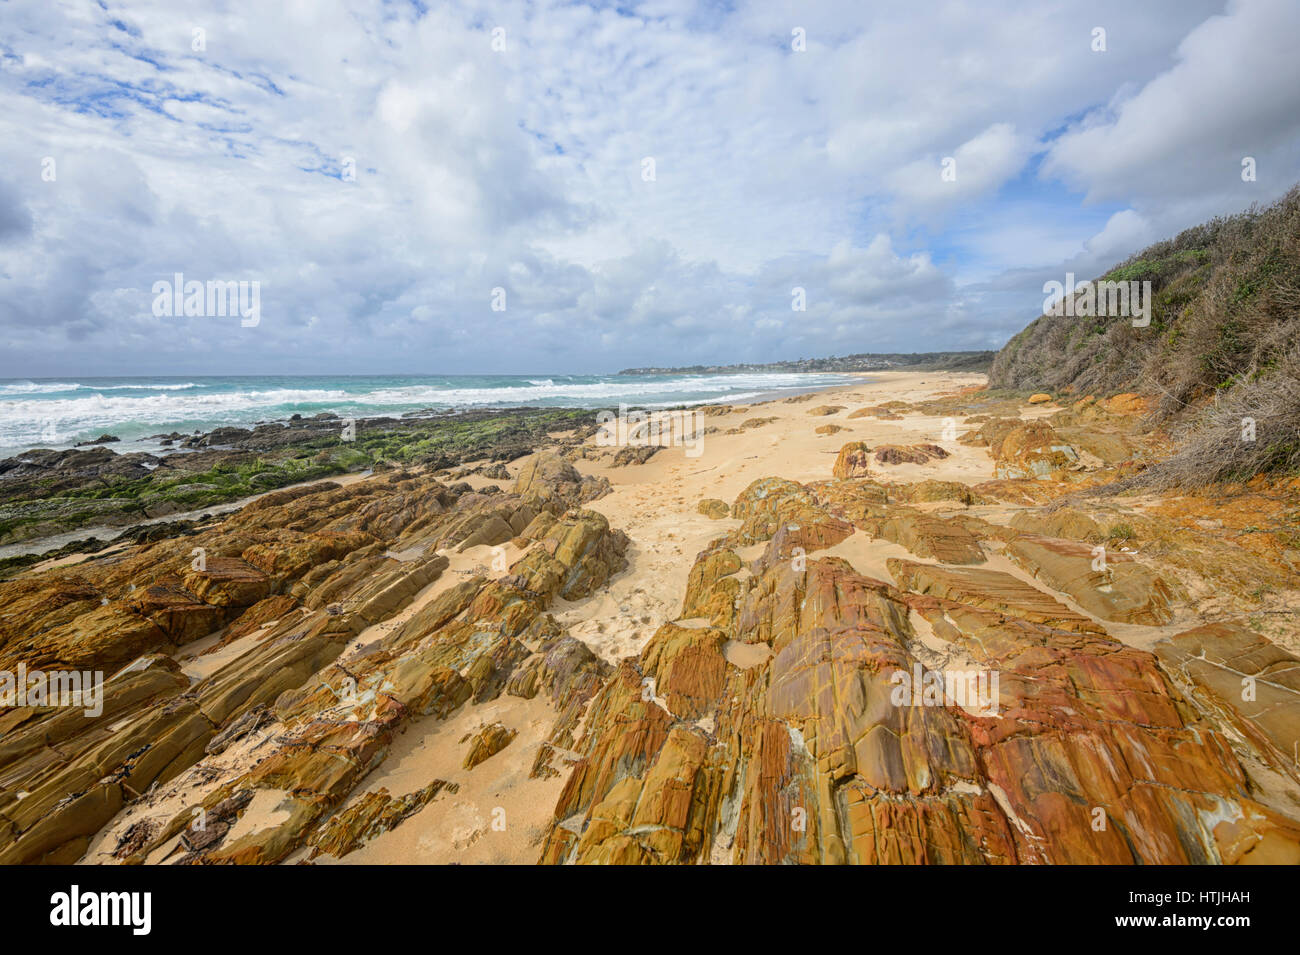 Brou Beach and its stunning rock formations on the Sapphire Coast, New South Wales, NSW, Australia - Stock Image